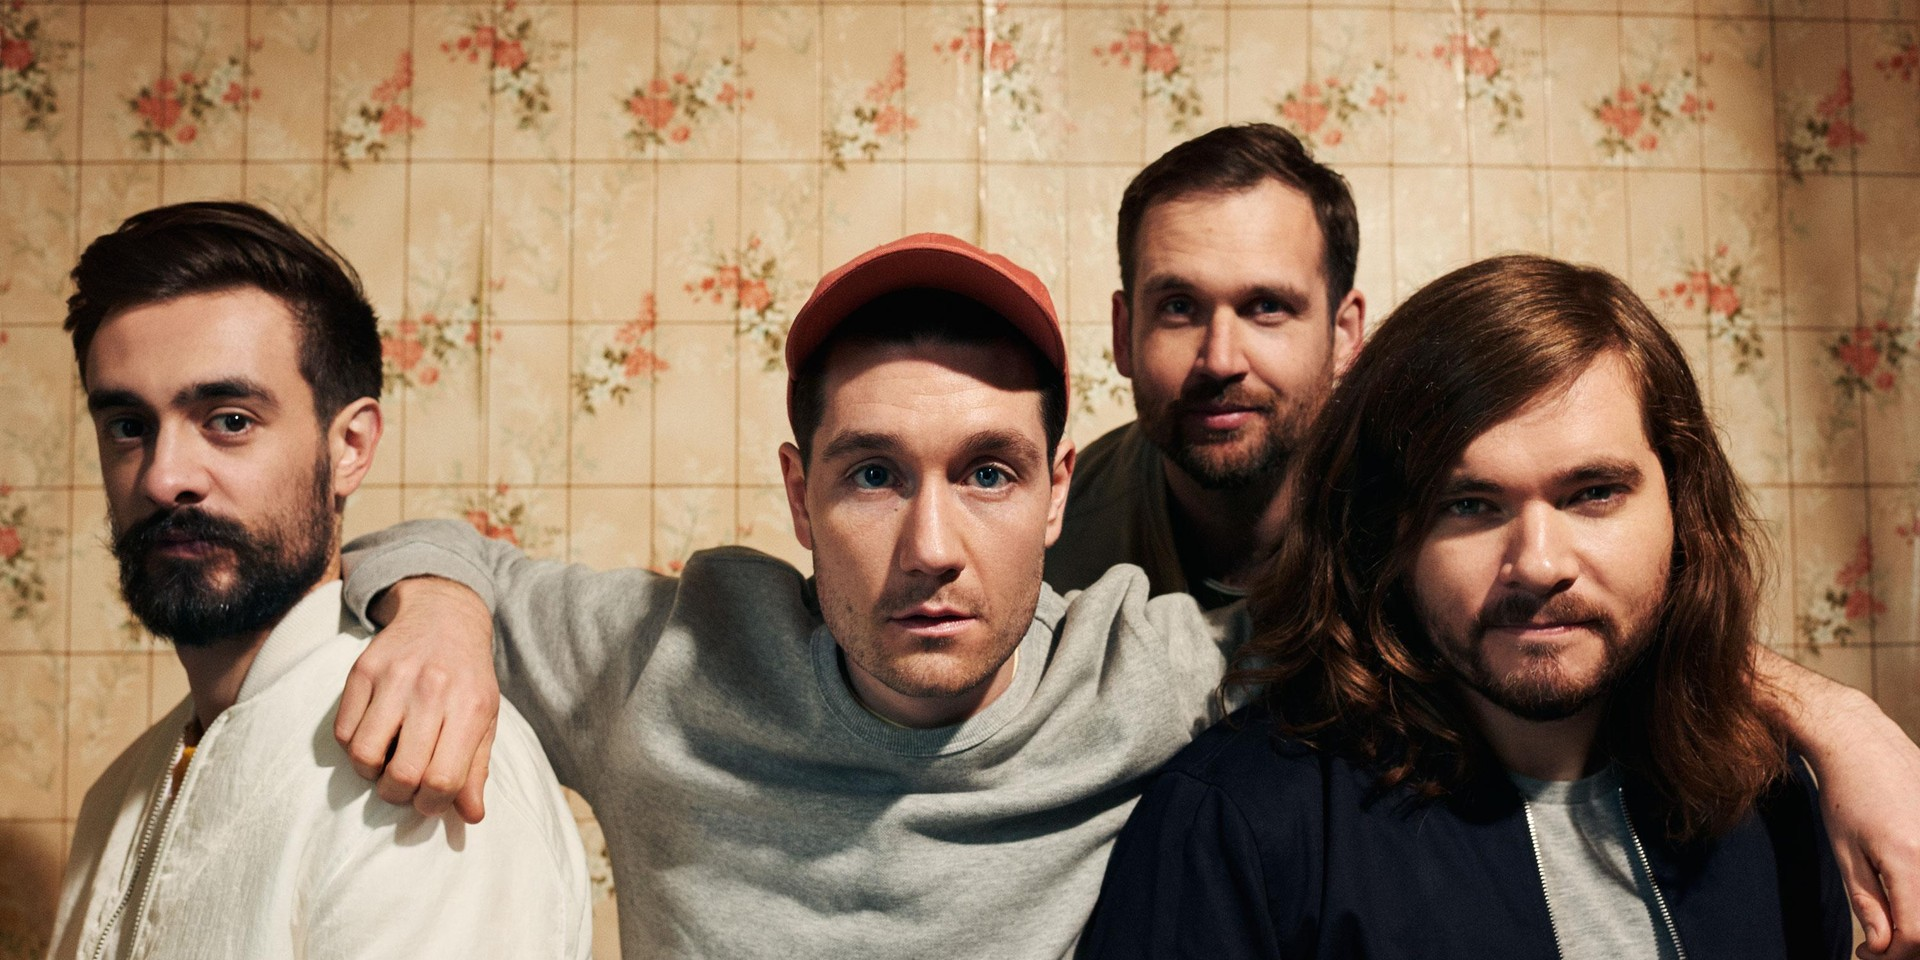 Bastille announces new album, releases new single 'Joy' – listen